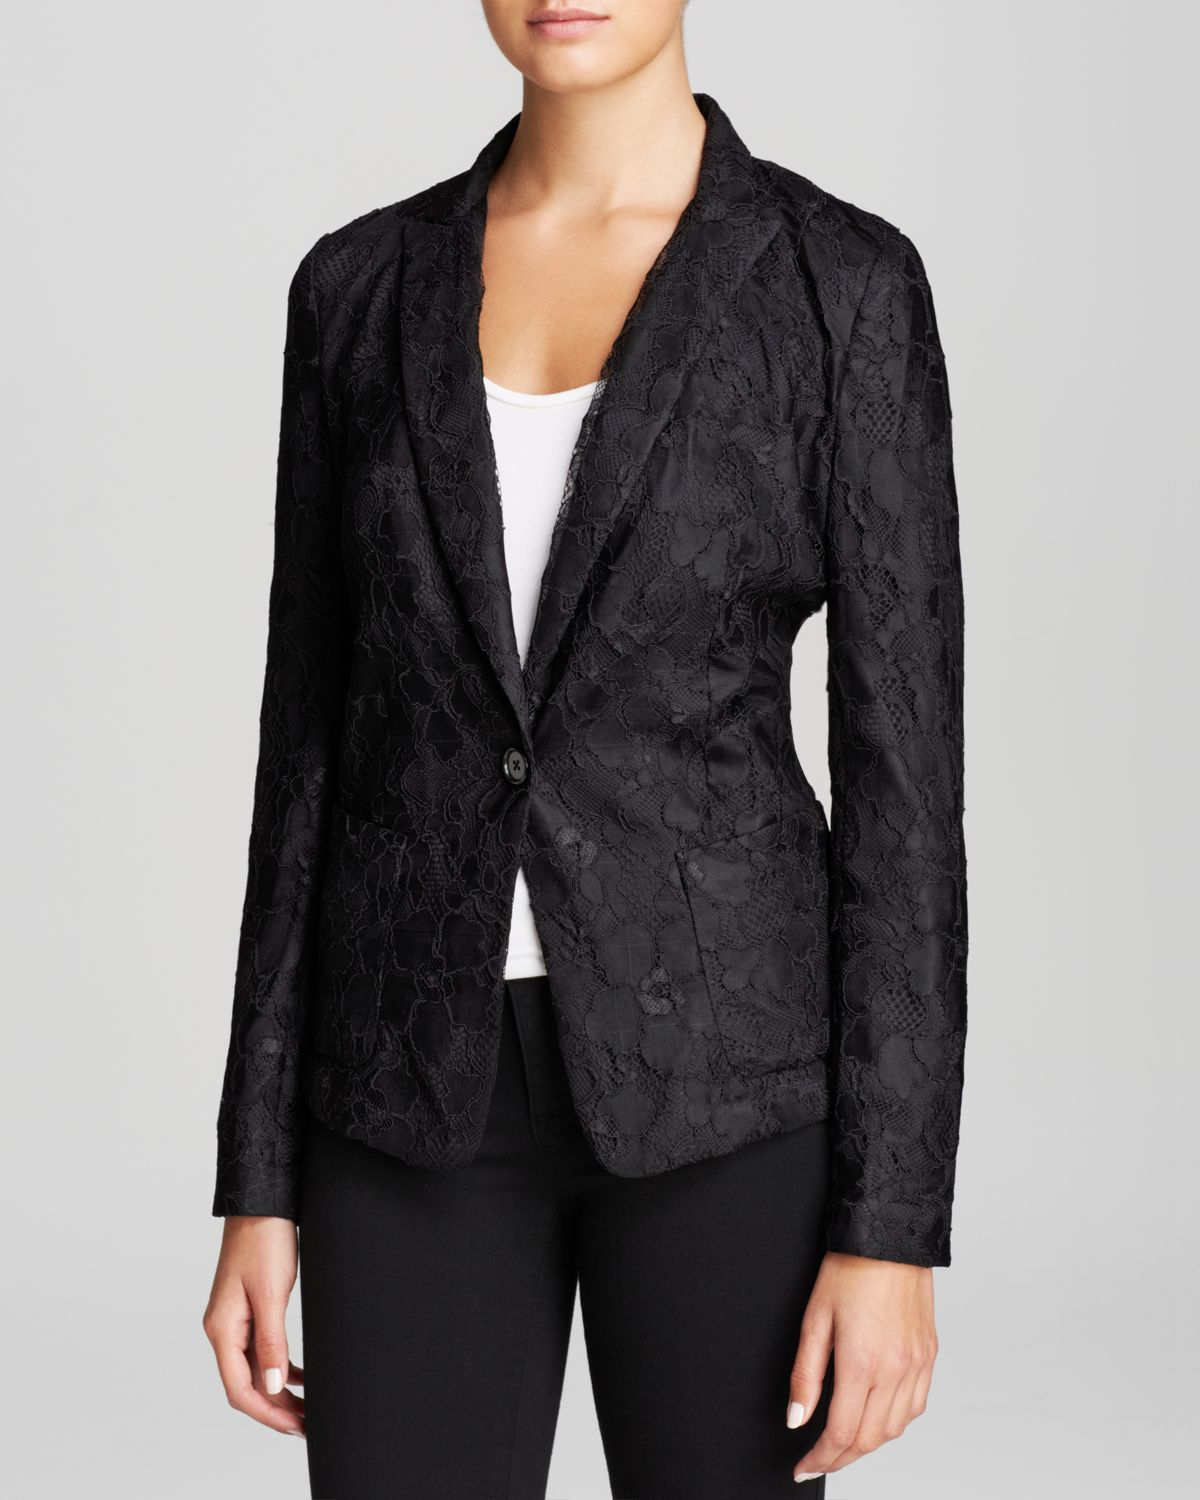 Find a great selection of women's blazers & jackets at cheswick-stand.tk Shop top brands like Vince Camuto, Topshop, Lafayette and more. Free shipping and returns.